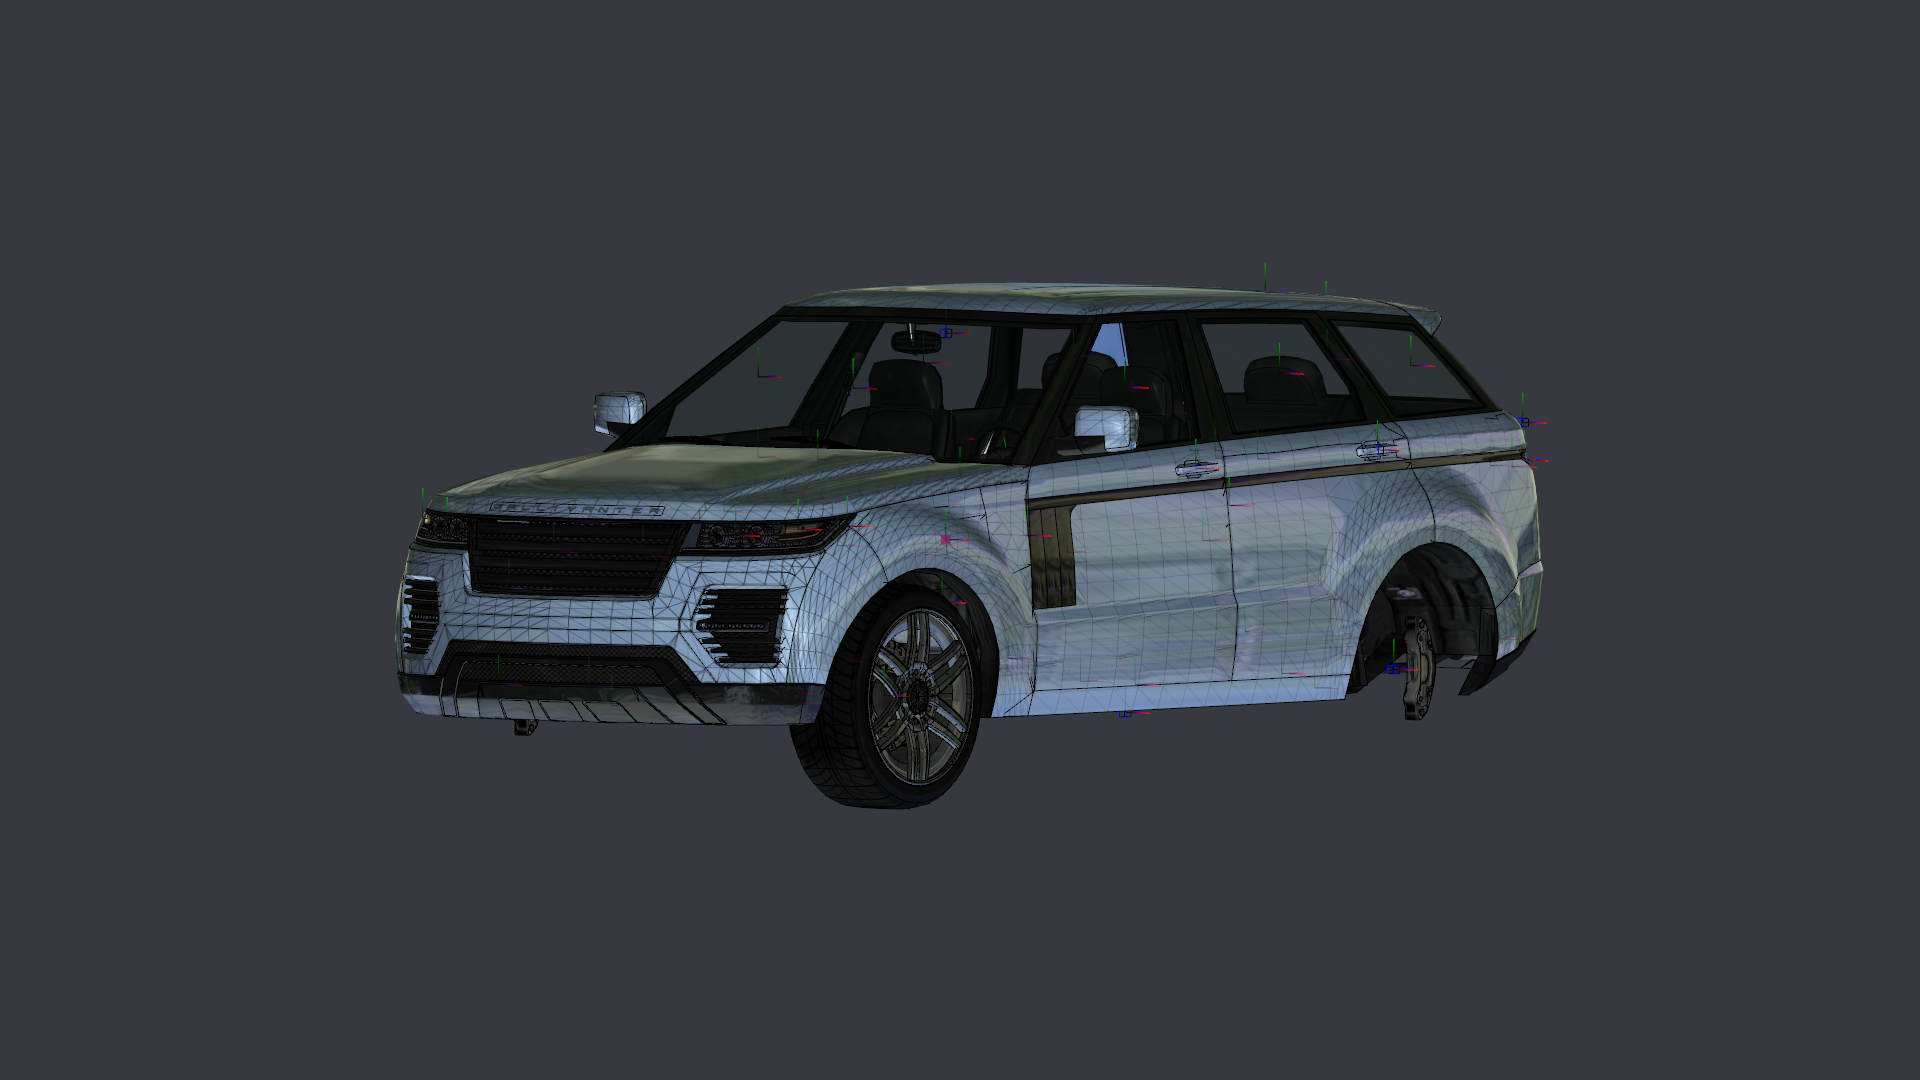 Gallivanter Baller (Second Generation) [UV-Mapped] 0.2